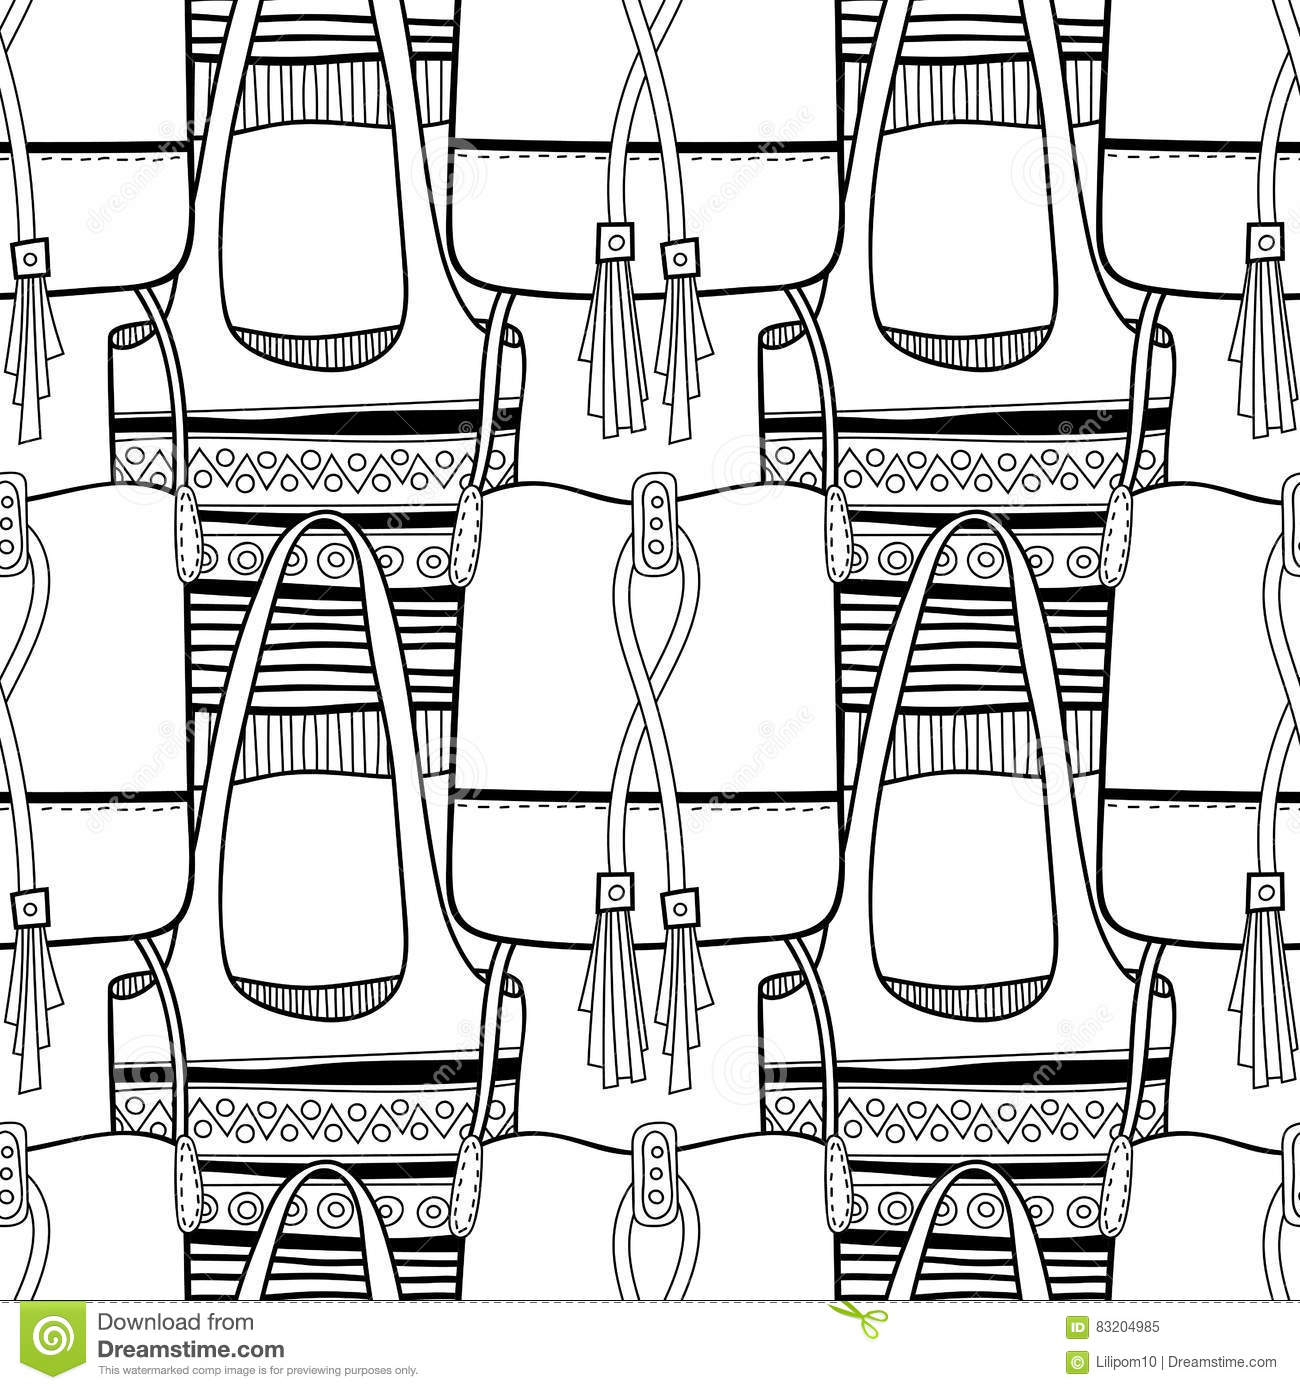 Black And White Seamless Pattern With Fashion Bags For Coloring Vector Illustration